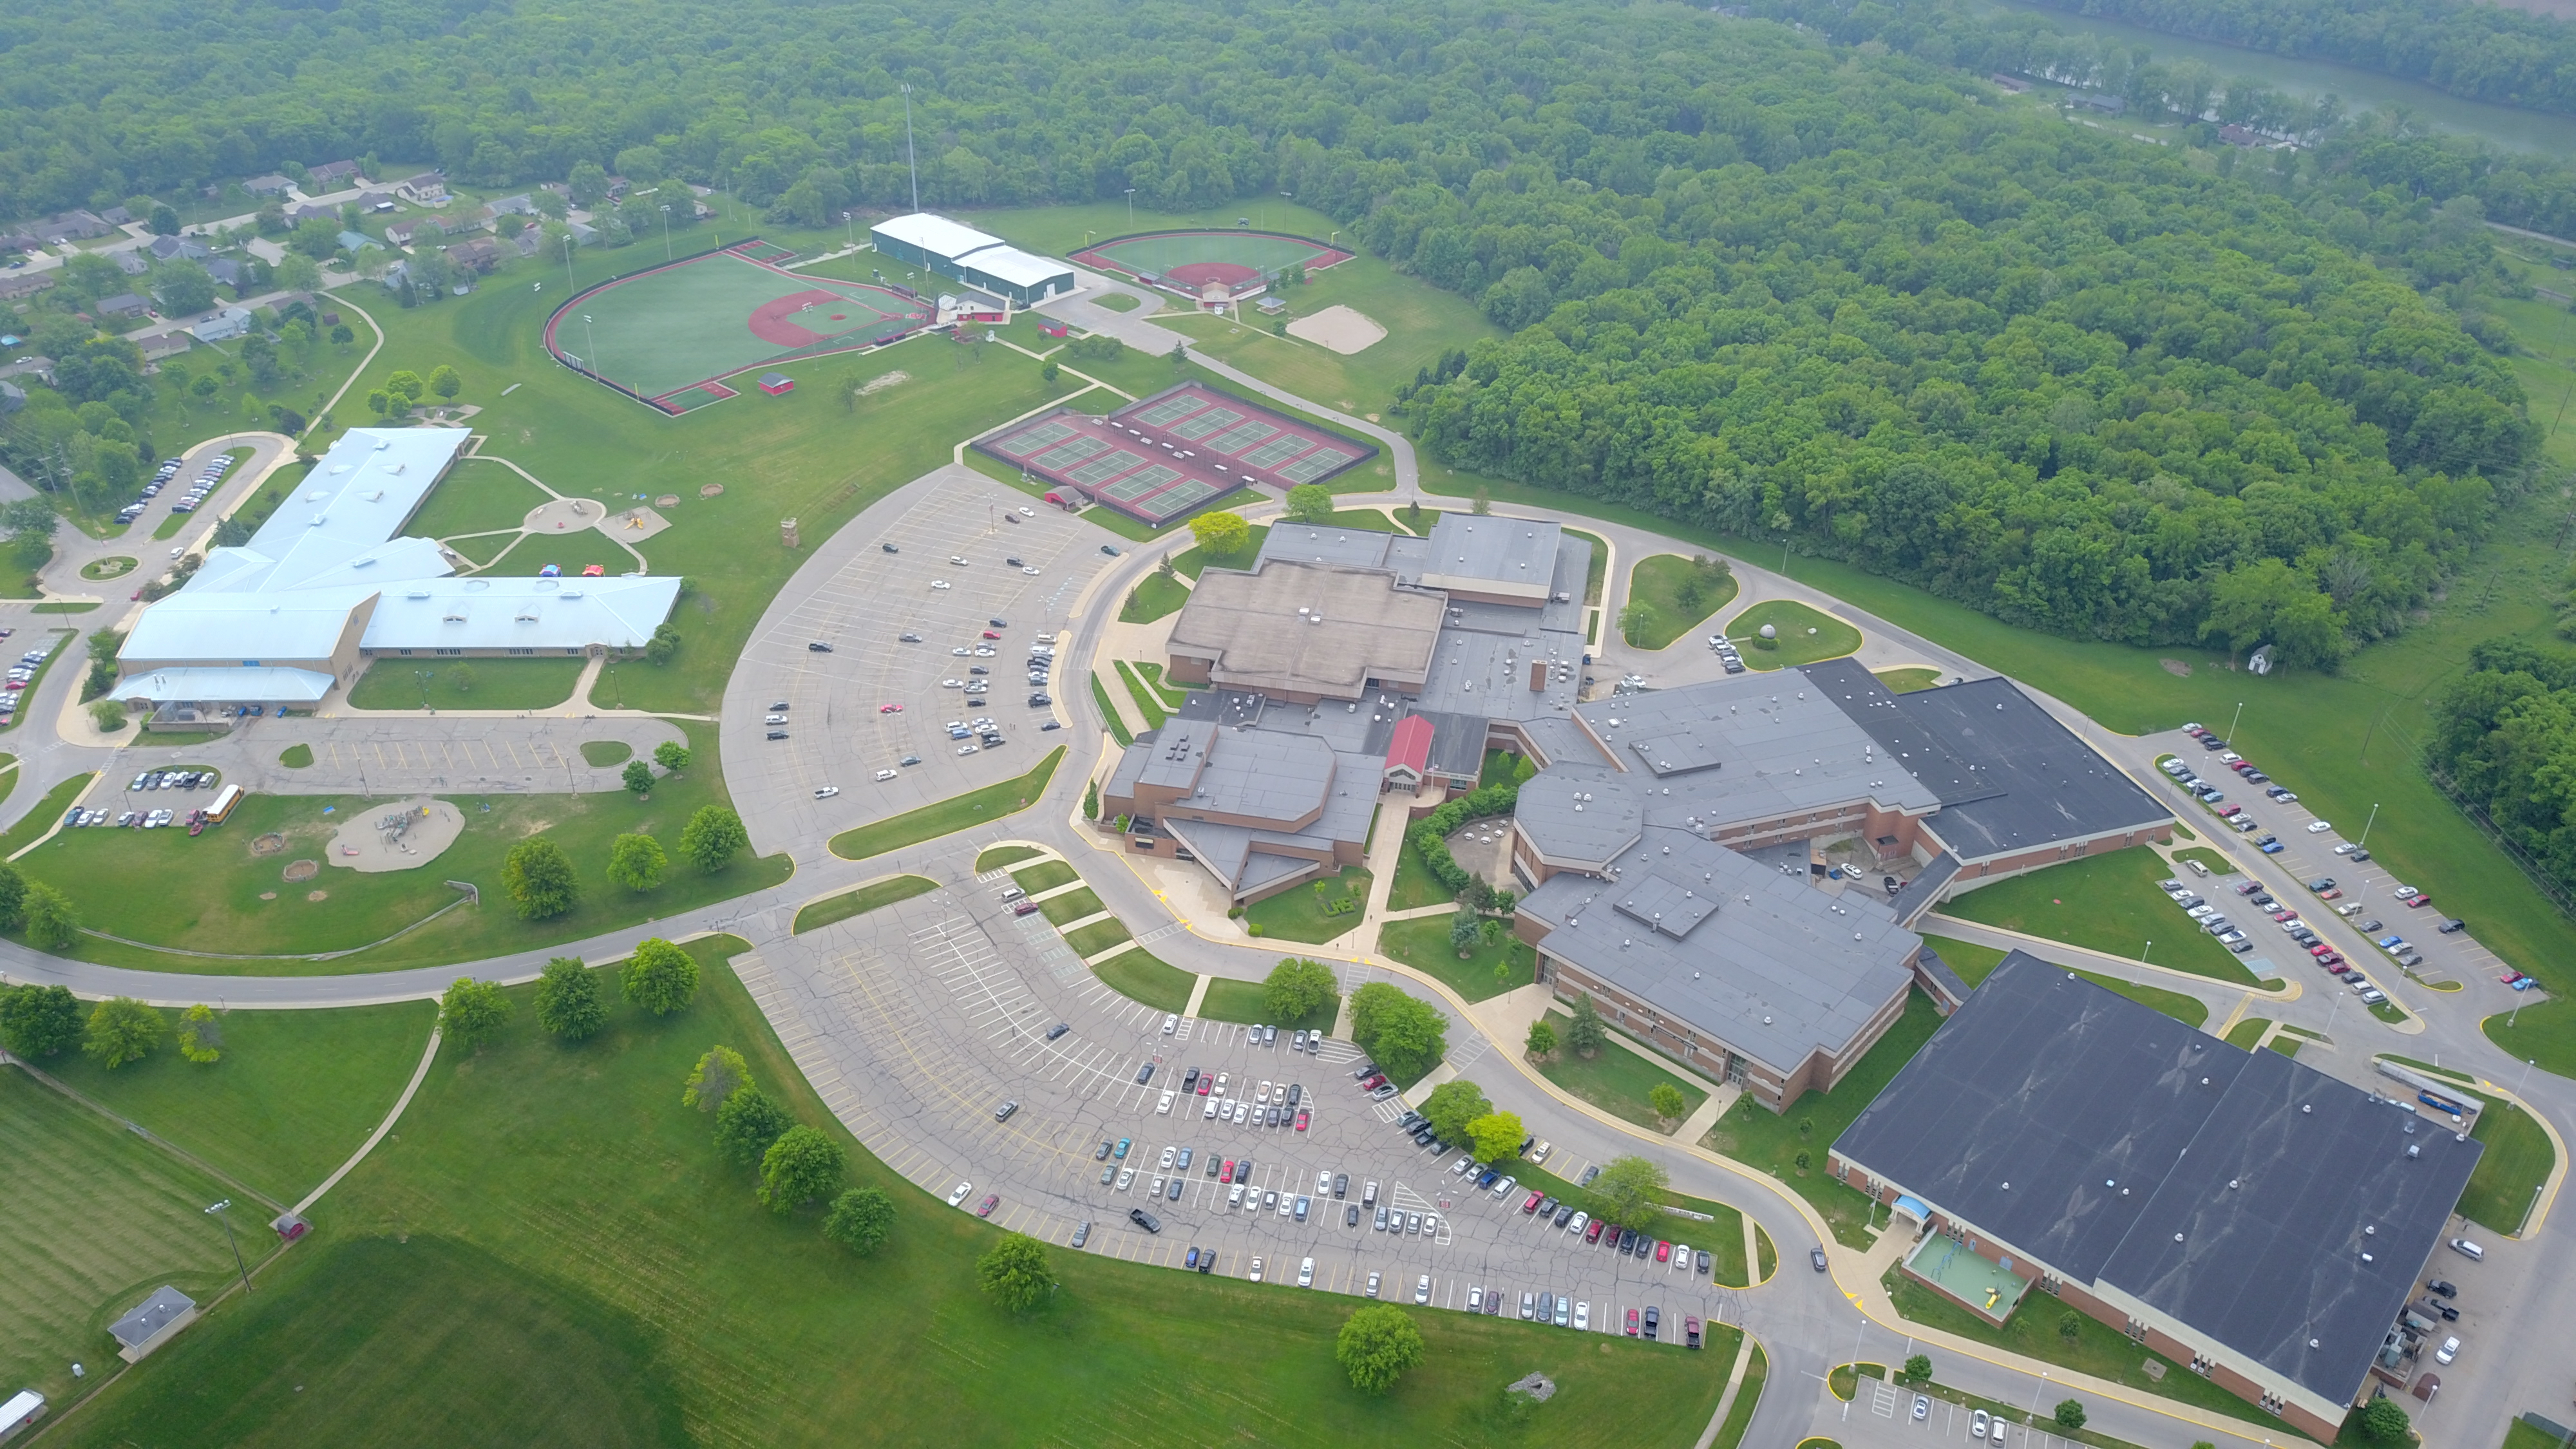 drone picture of LHS